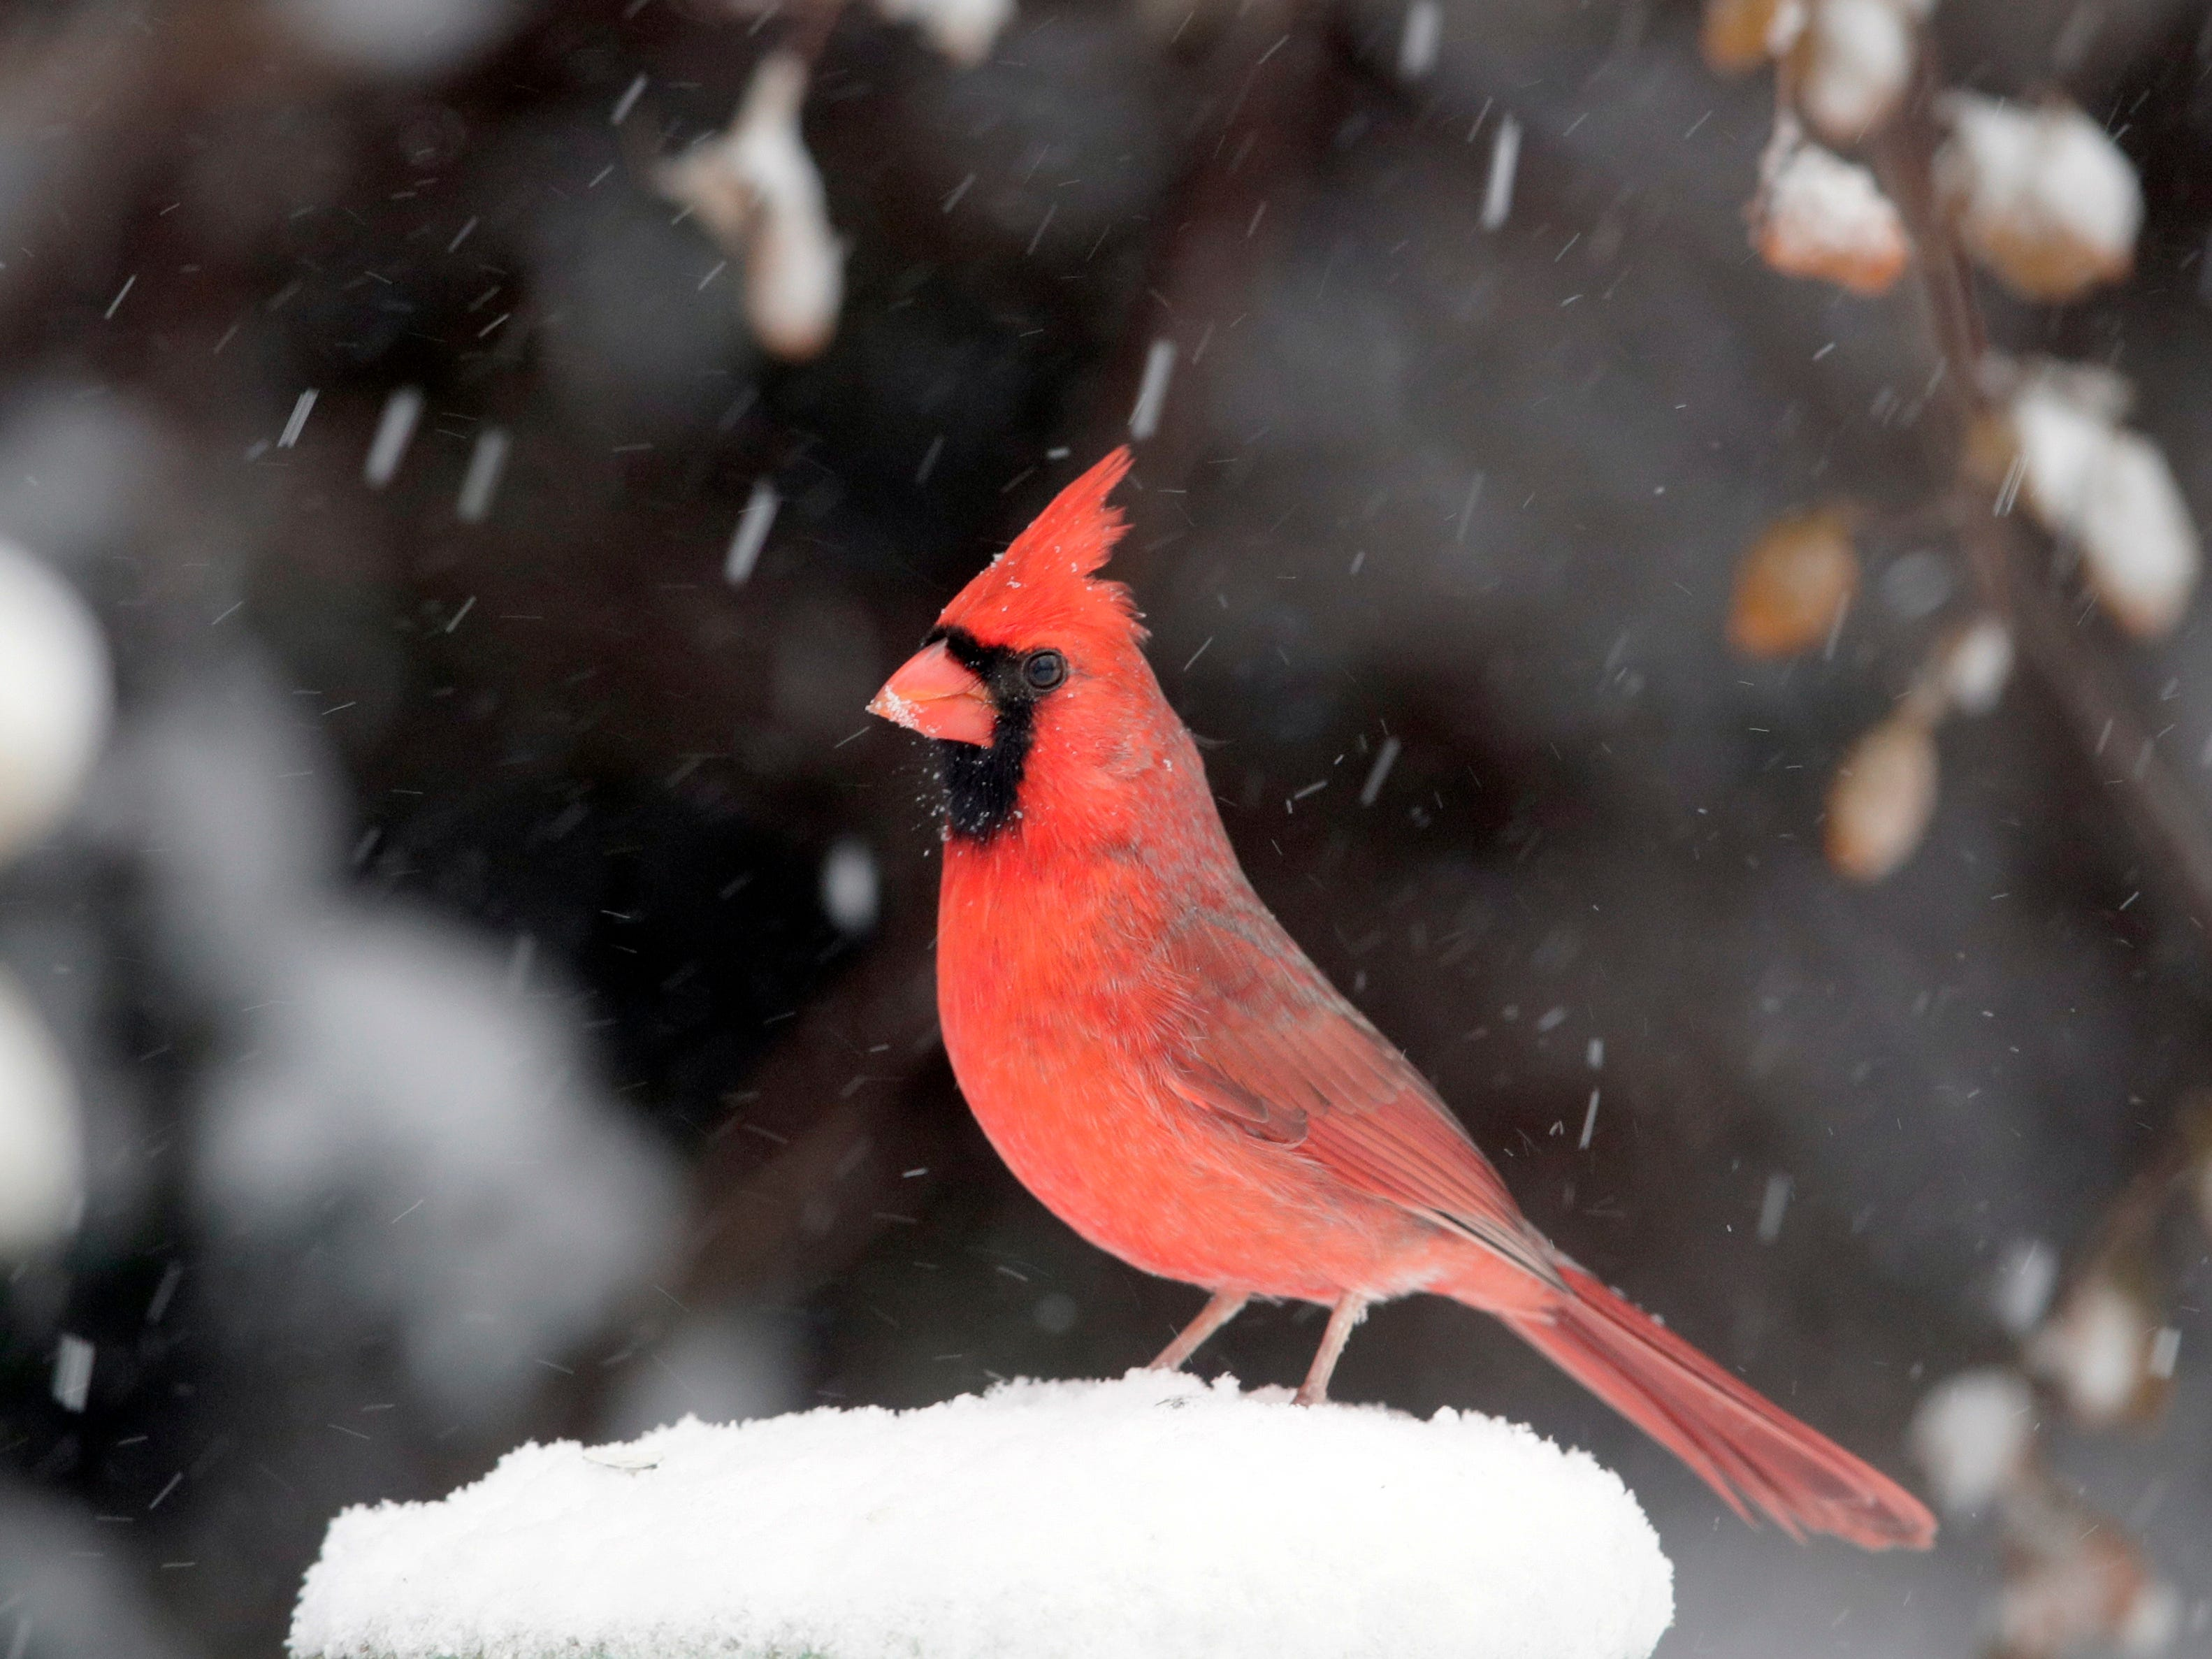 A cardinal stands on a snow-covered perch in Lawrence, Kan. on Nov. 25, 2018.